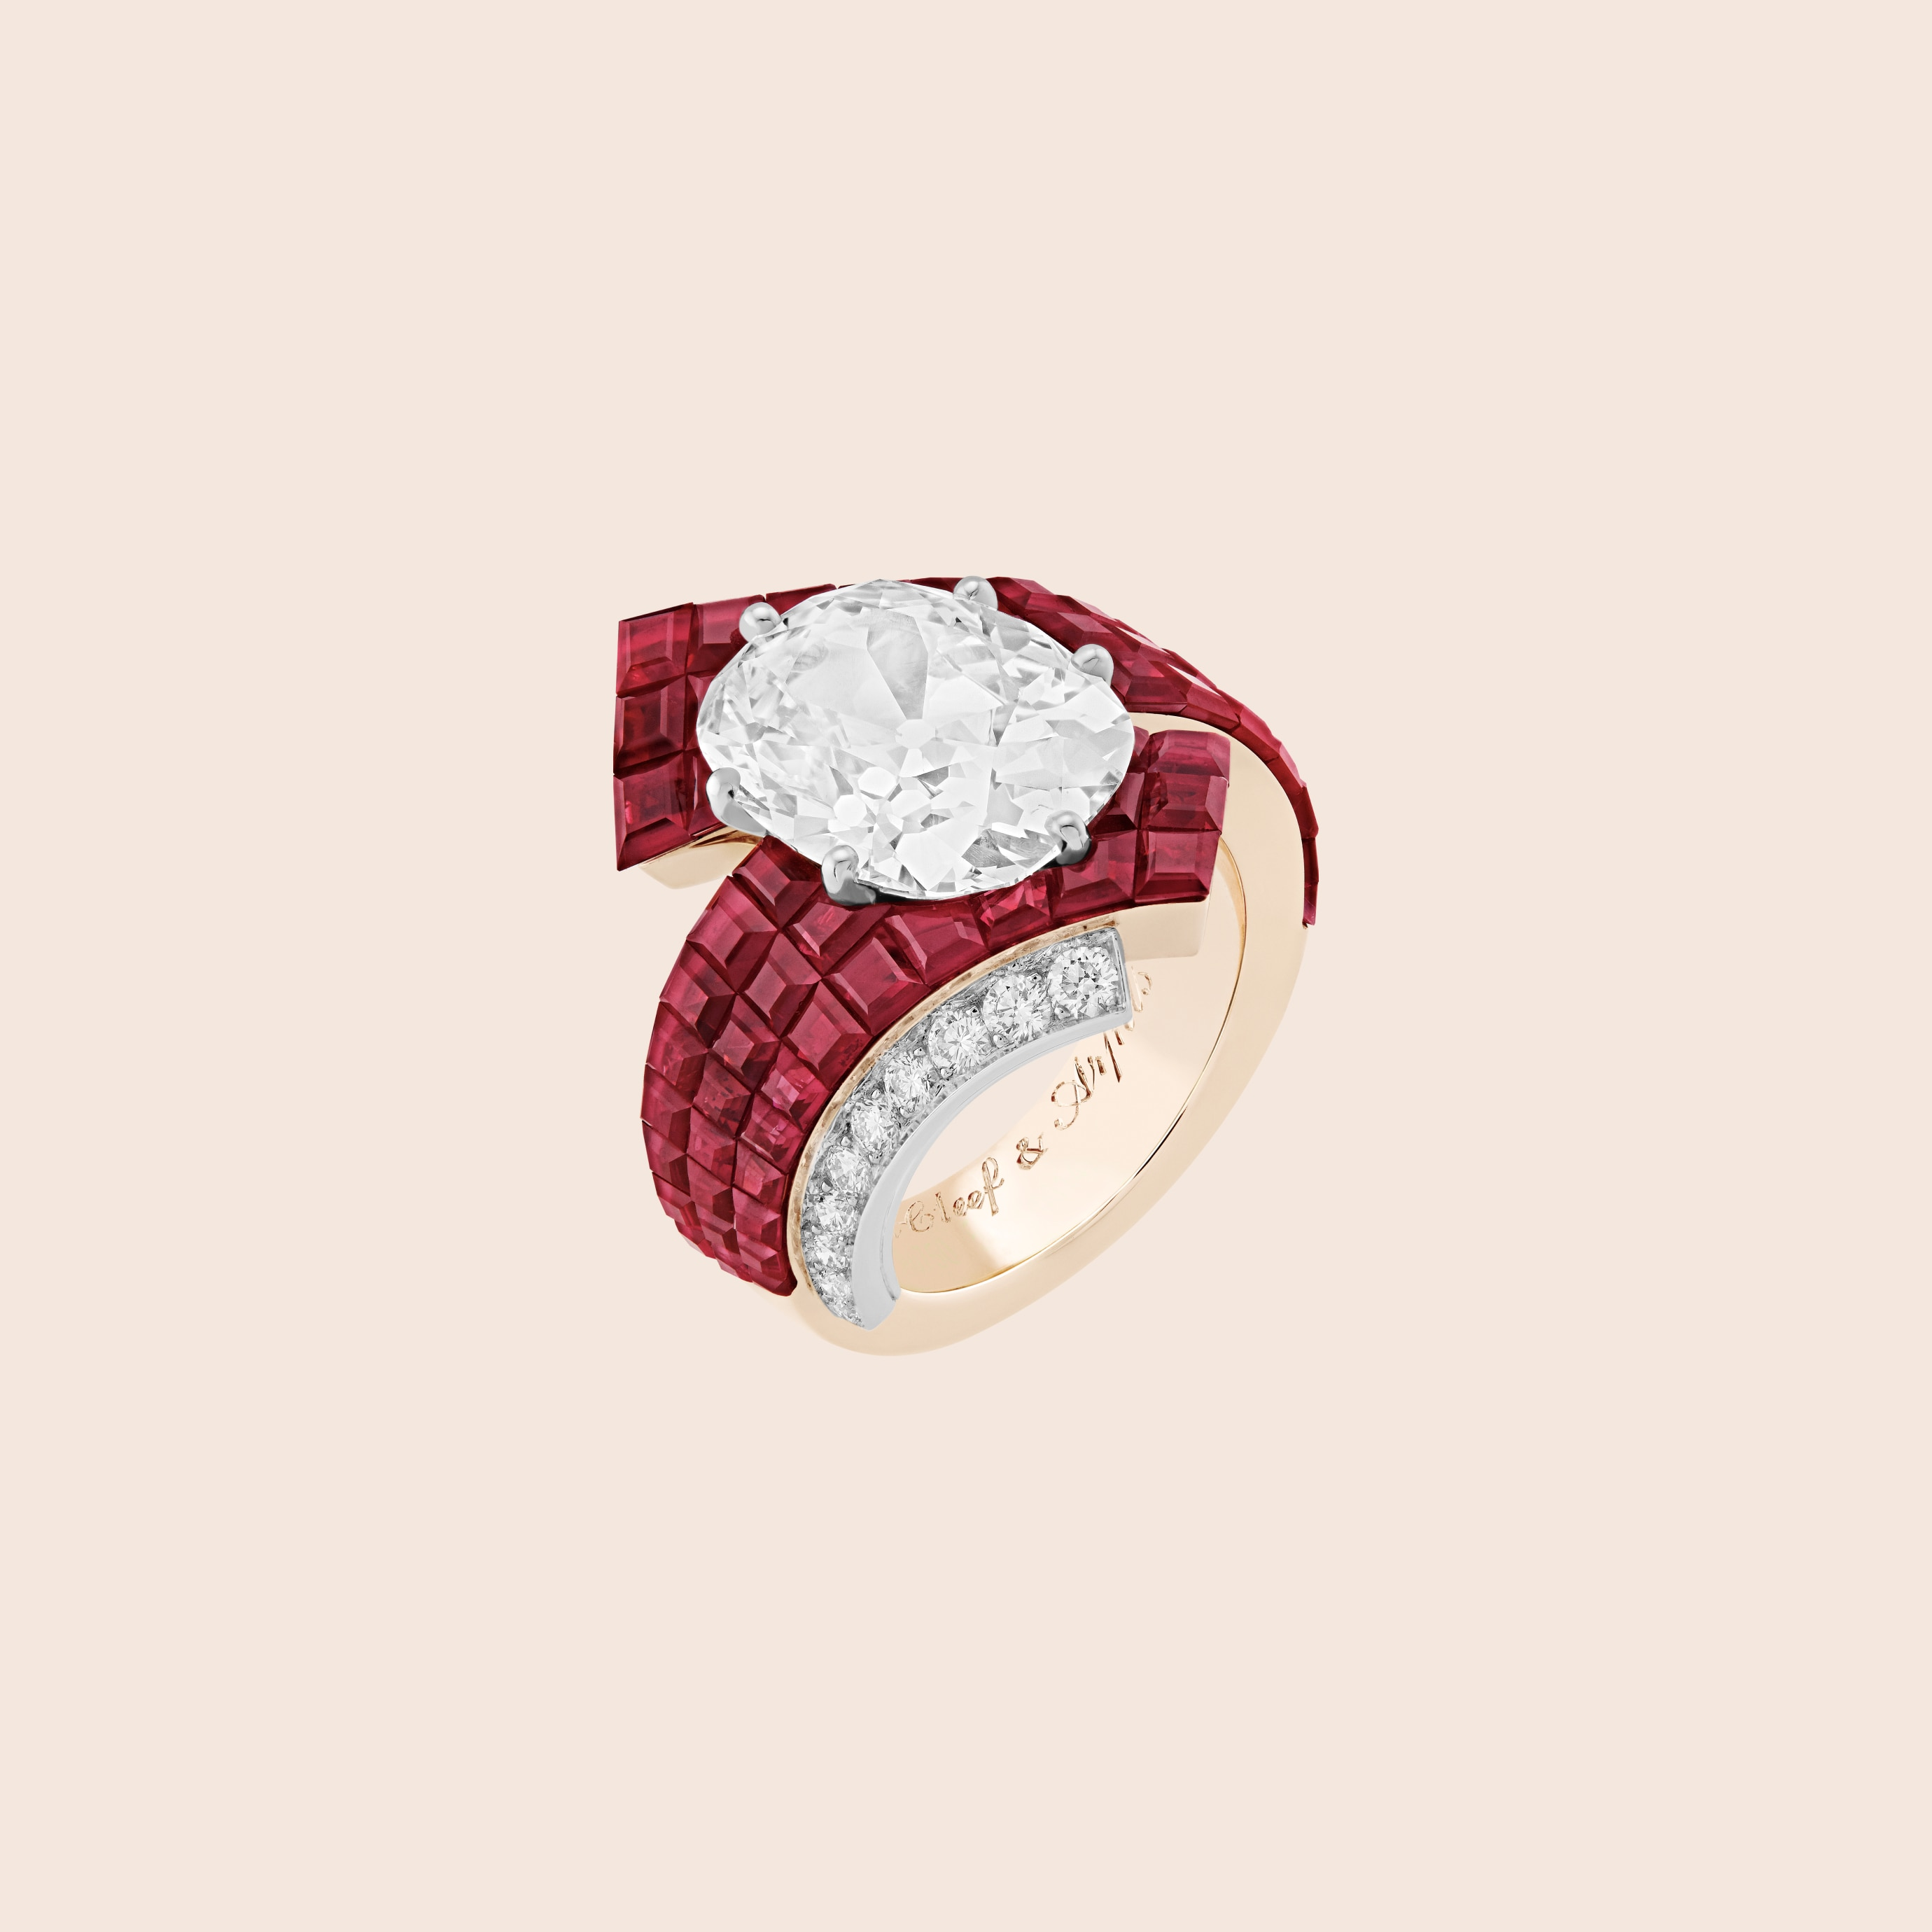 Etoffe Mystérieuse ring, White gold, rose gold, Traditional Mystery Set rubies, one cushion-cut DIF diamond of 6.03 carats, diamonds, Treasure of rubies collection, Van Cleef & Arpels